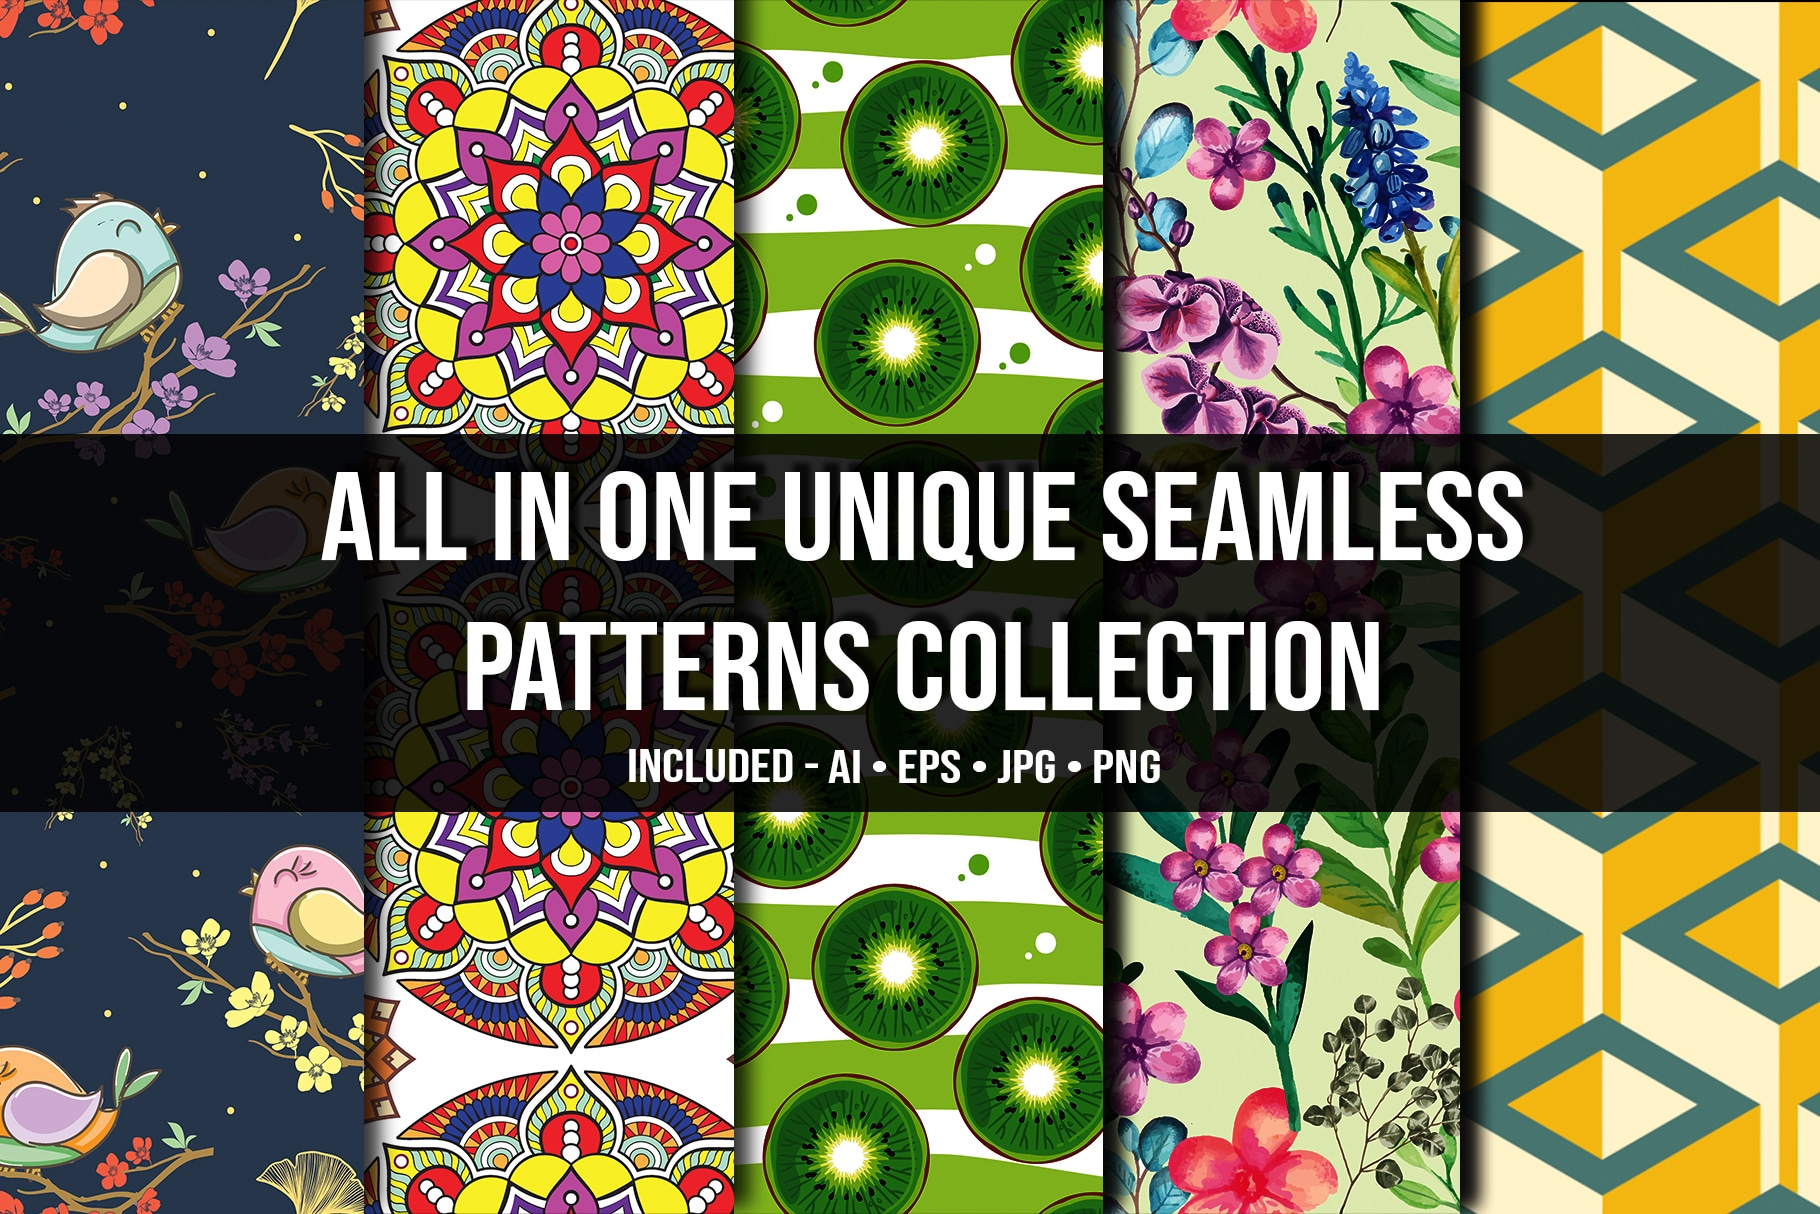 All in One Unique Seamless Patterns